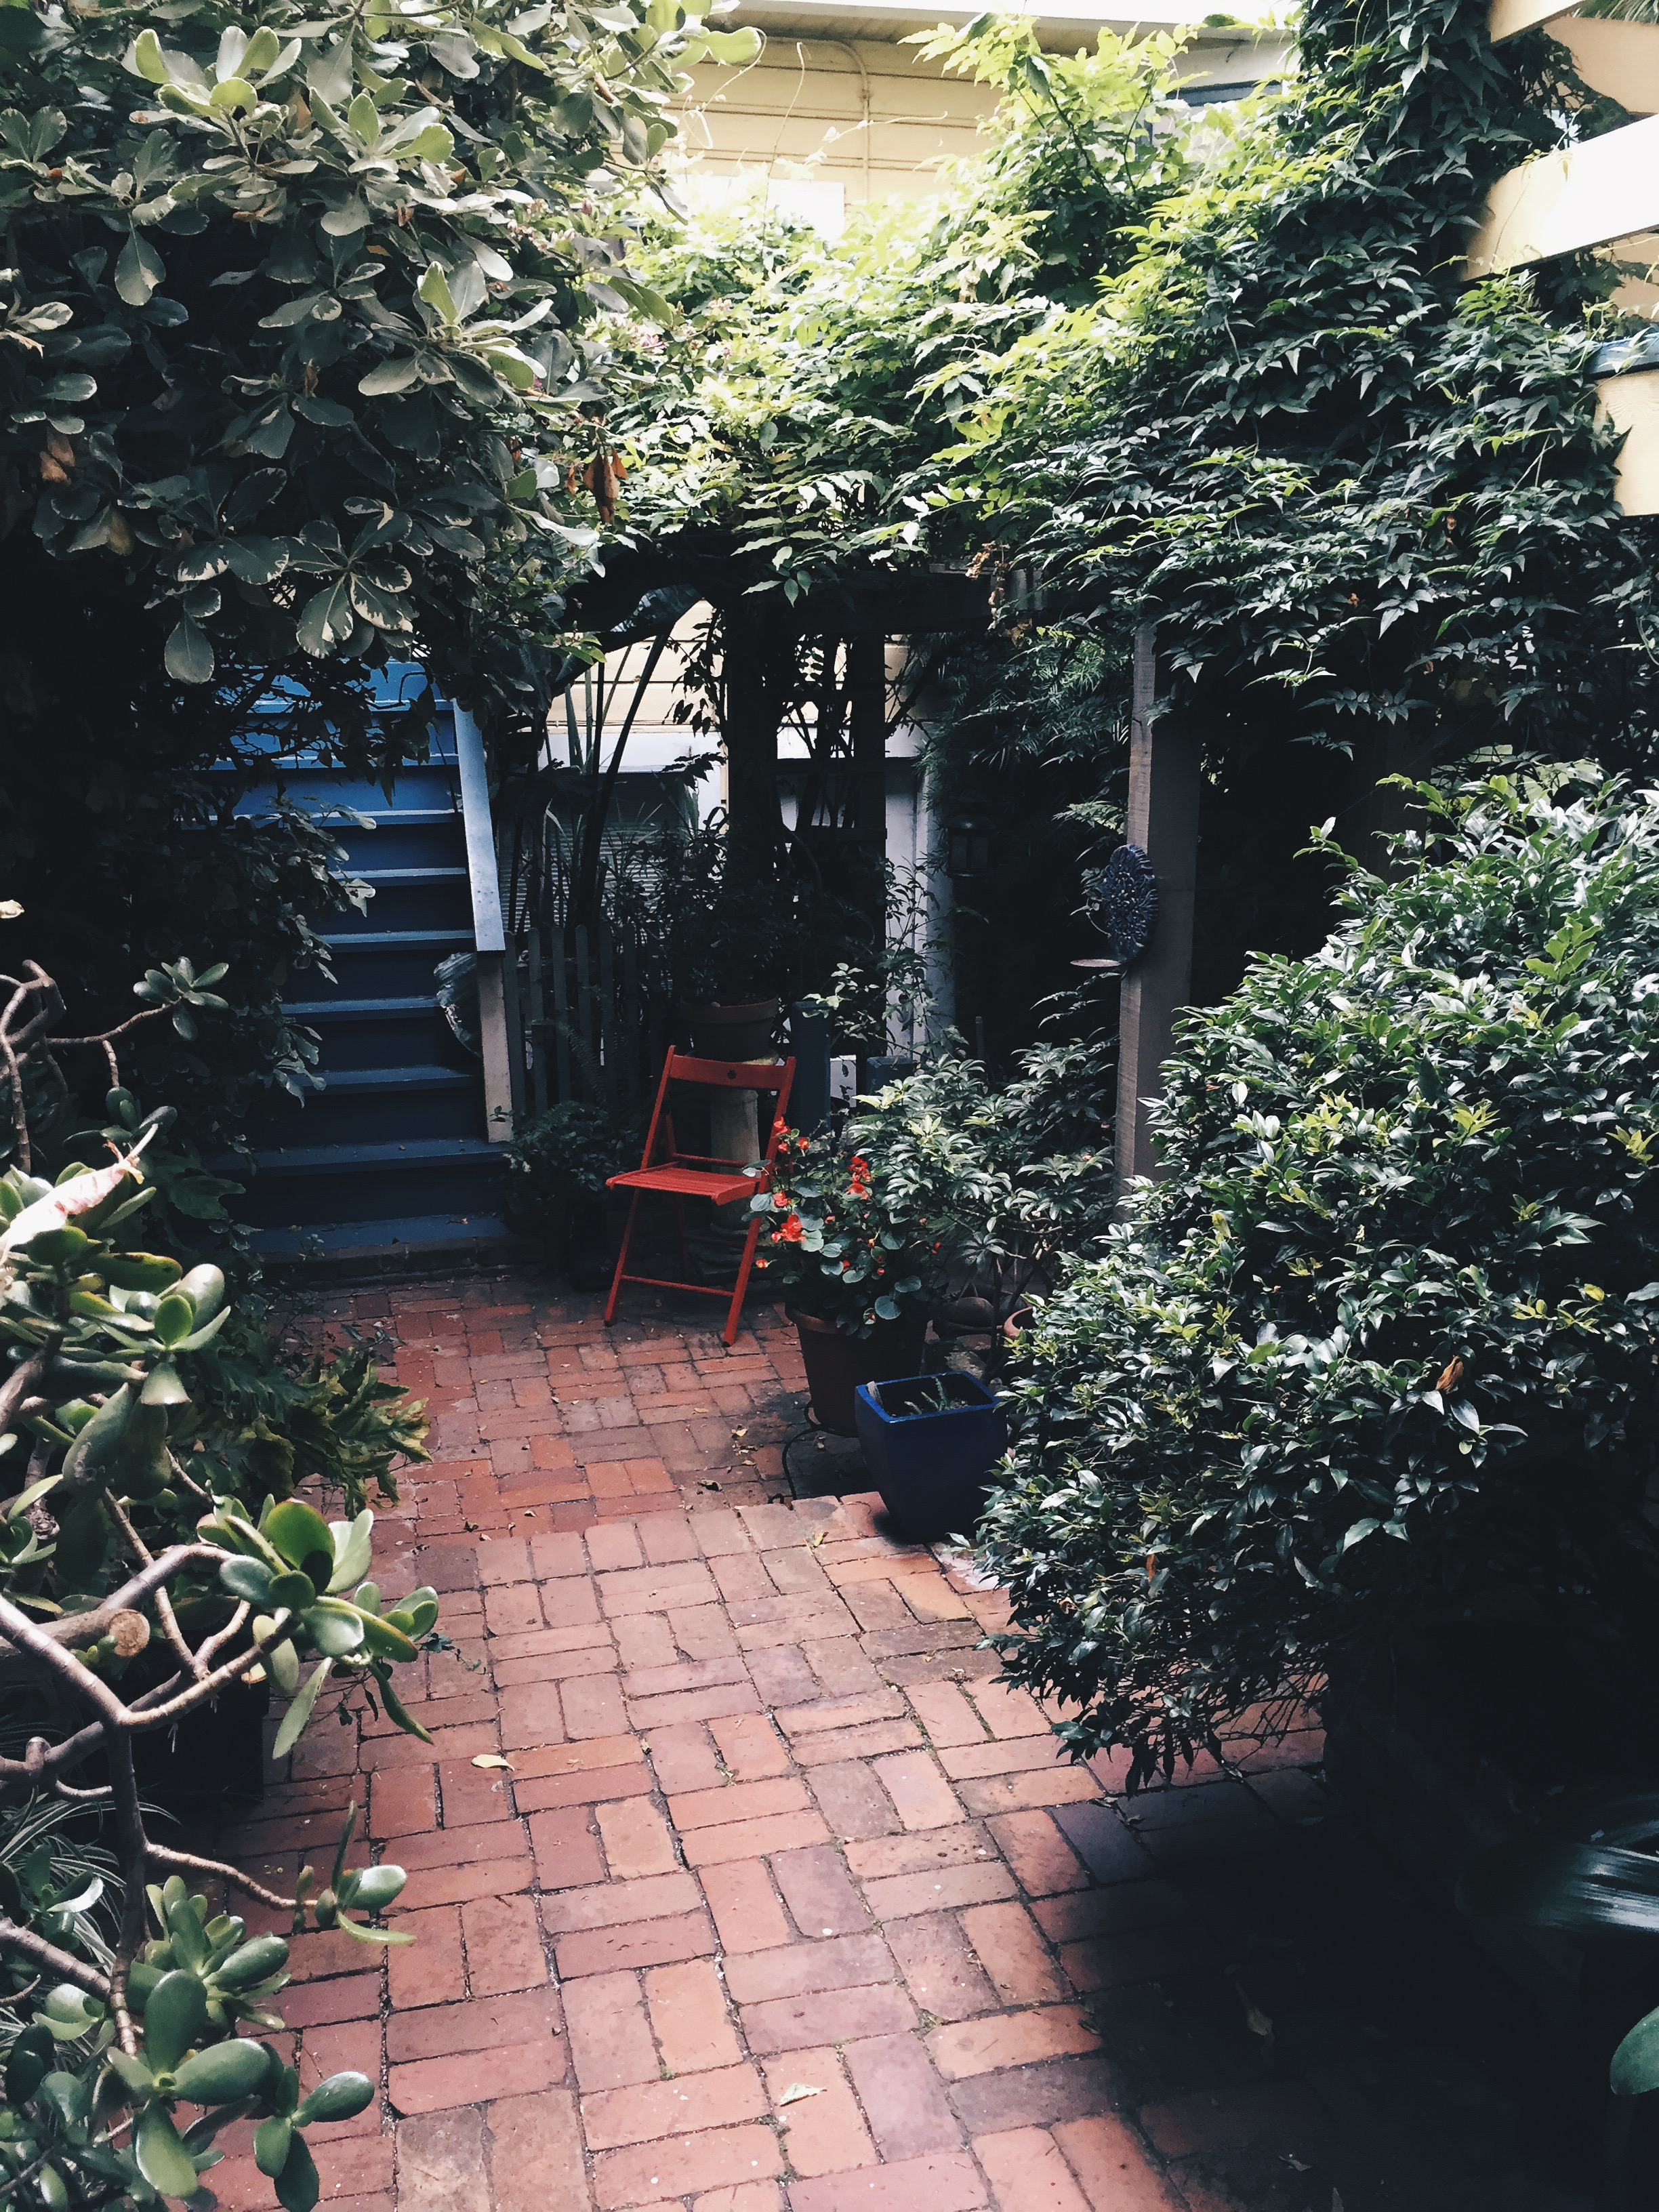 Then outside we have a shared garden with or neighbors.